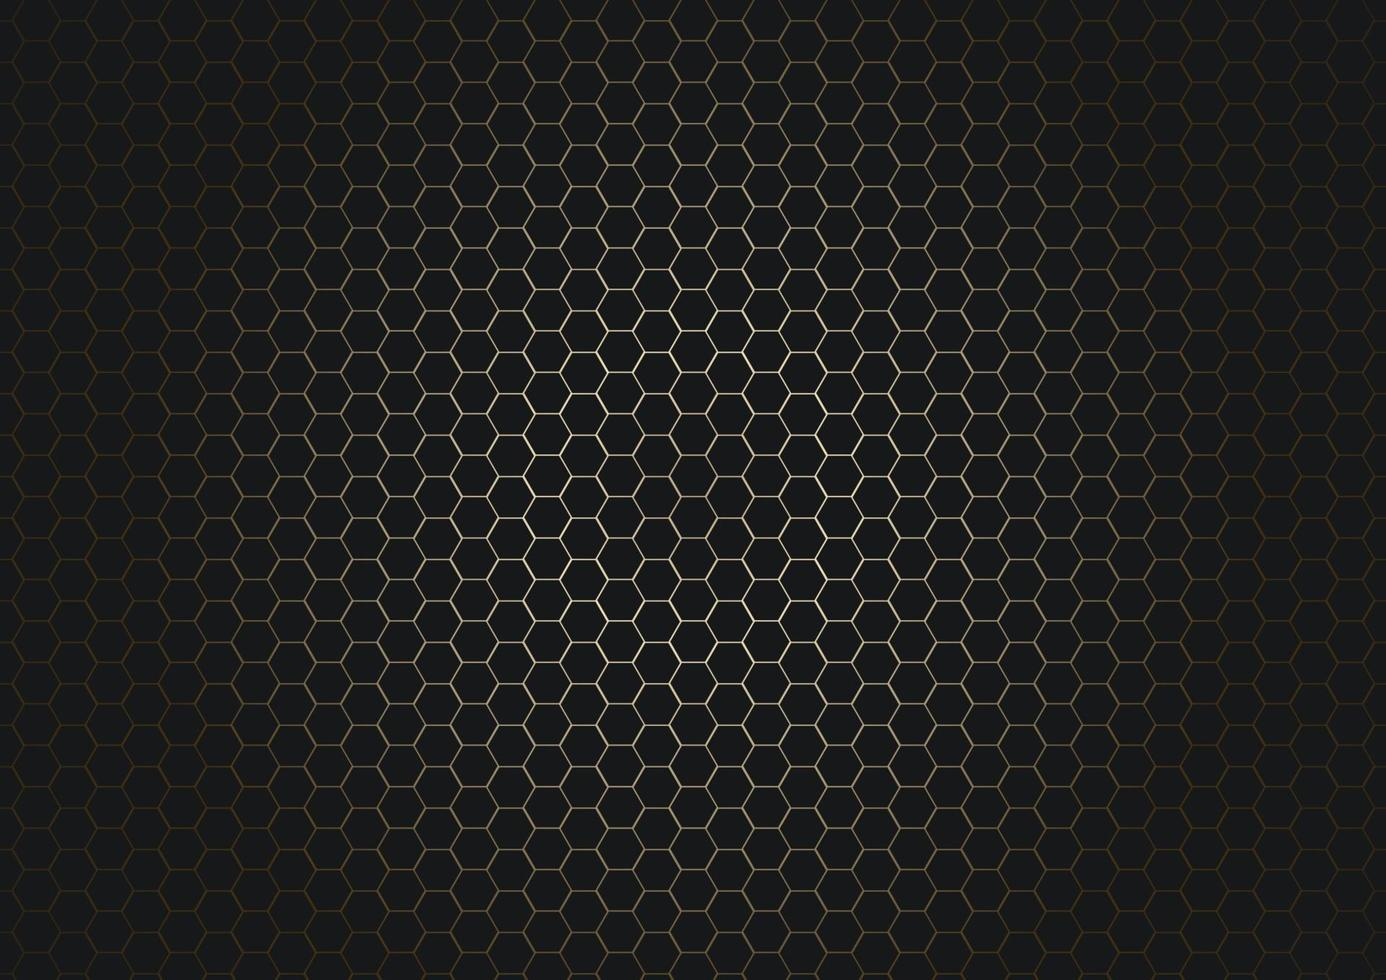 Abstract black hexagon pattern on glowing gold background and texture. vector